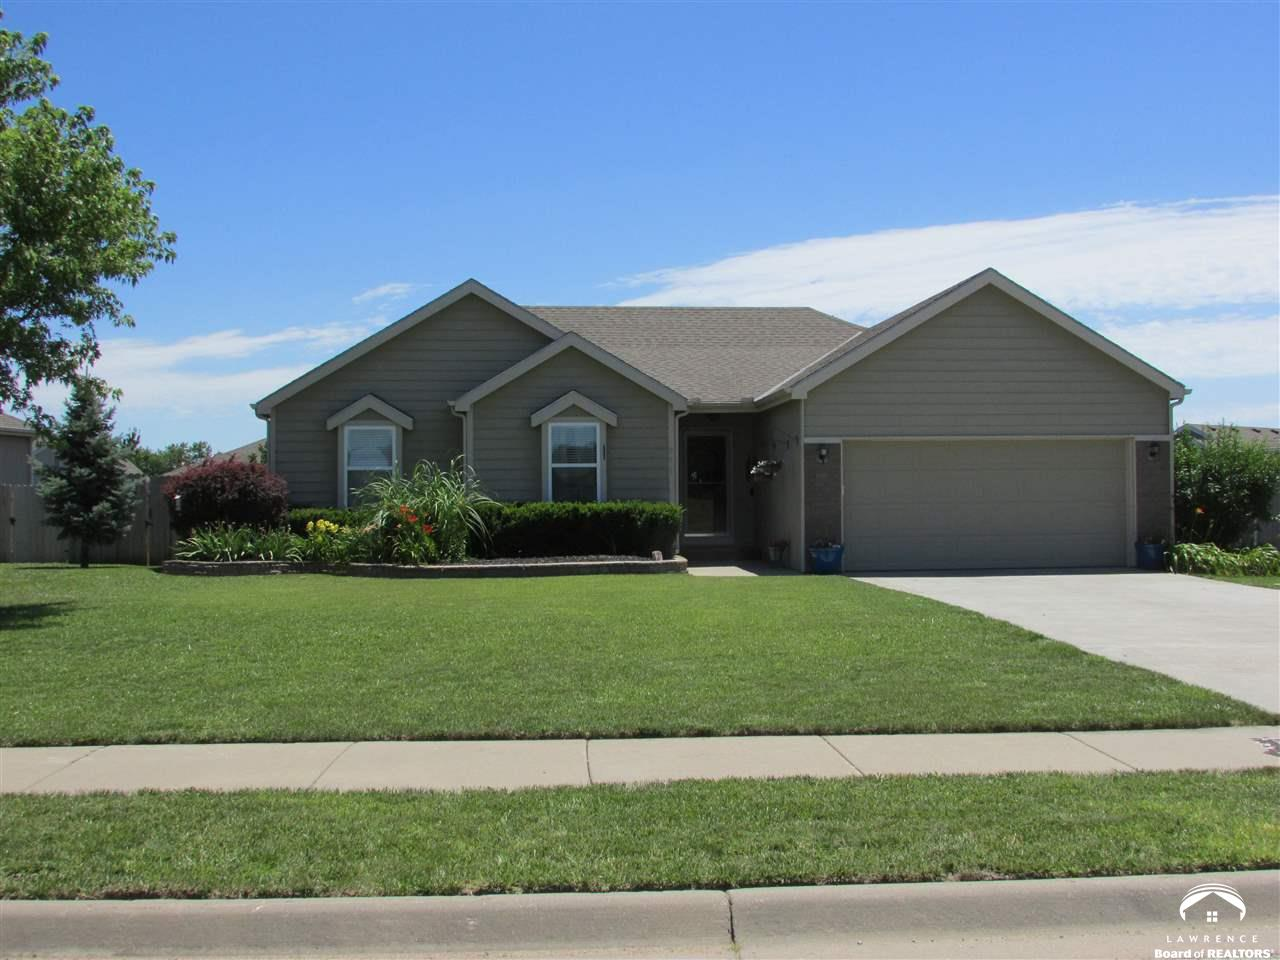 931 Bluestem Drive, Baldwin City, KS 66006